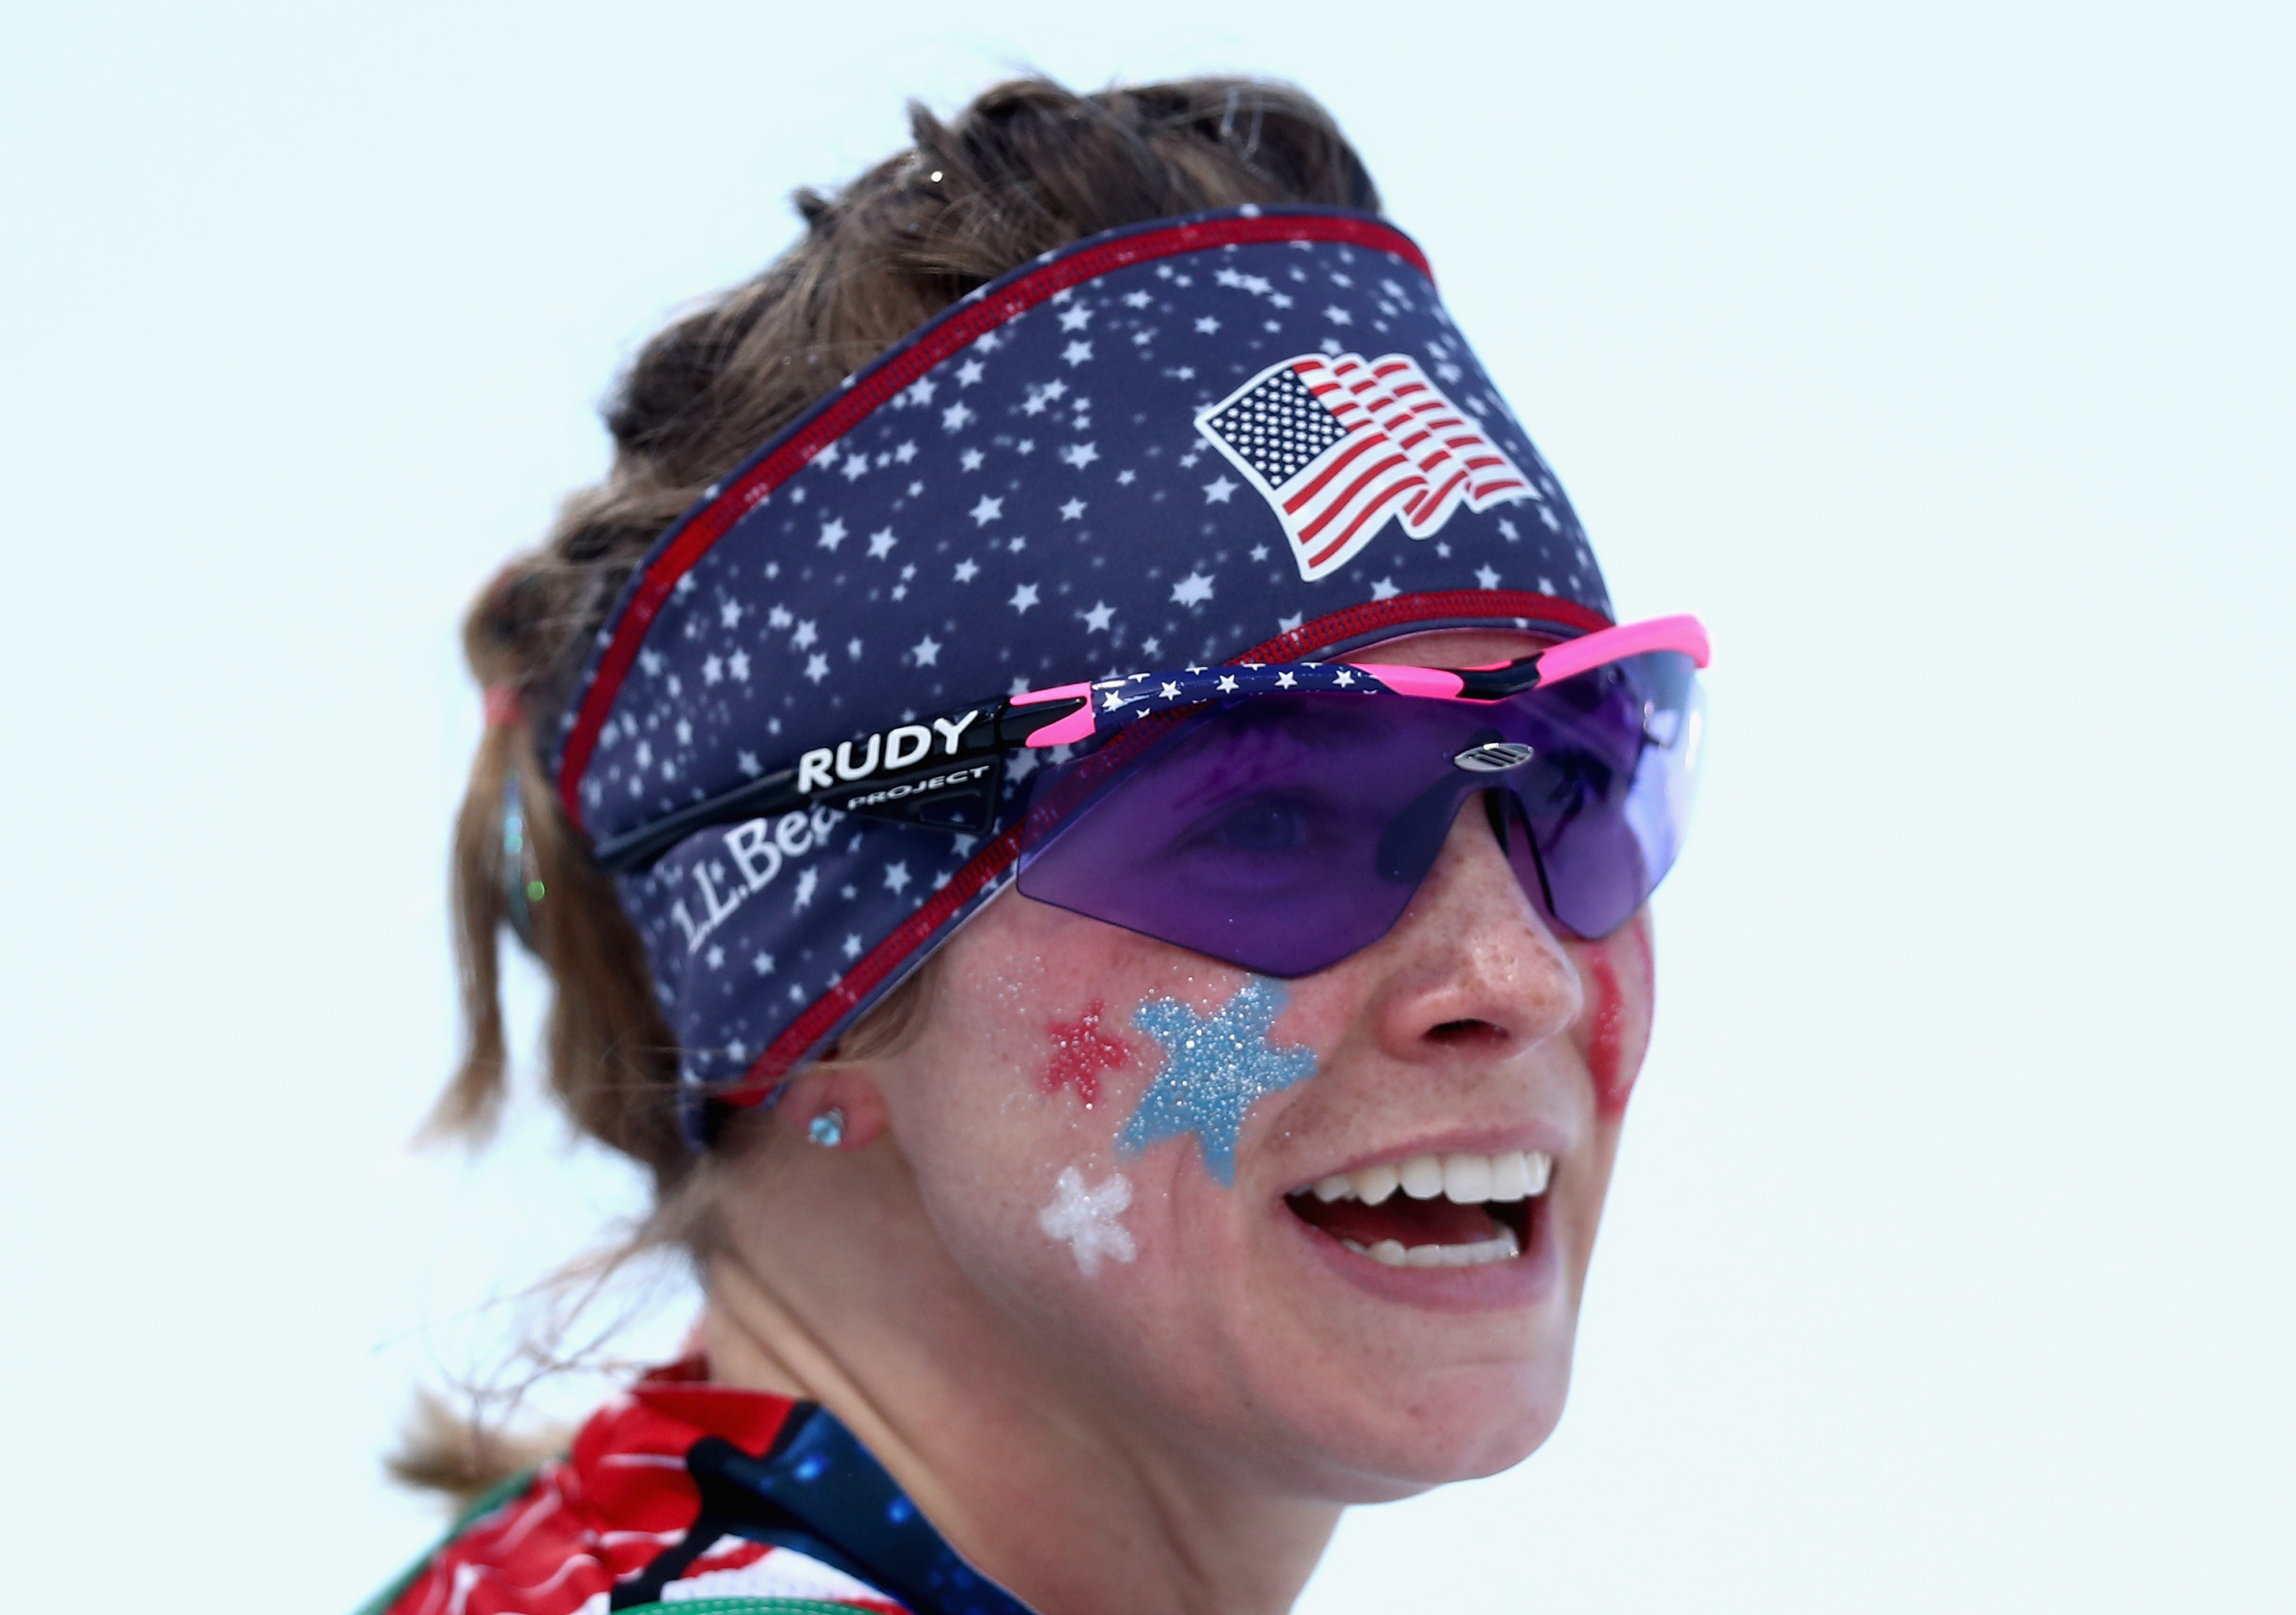 Jessie Diggins to carry United States flag at Closing Ceremony in PyeongChang